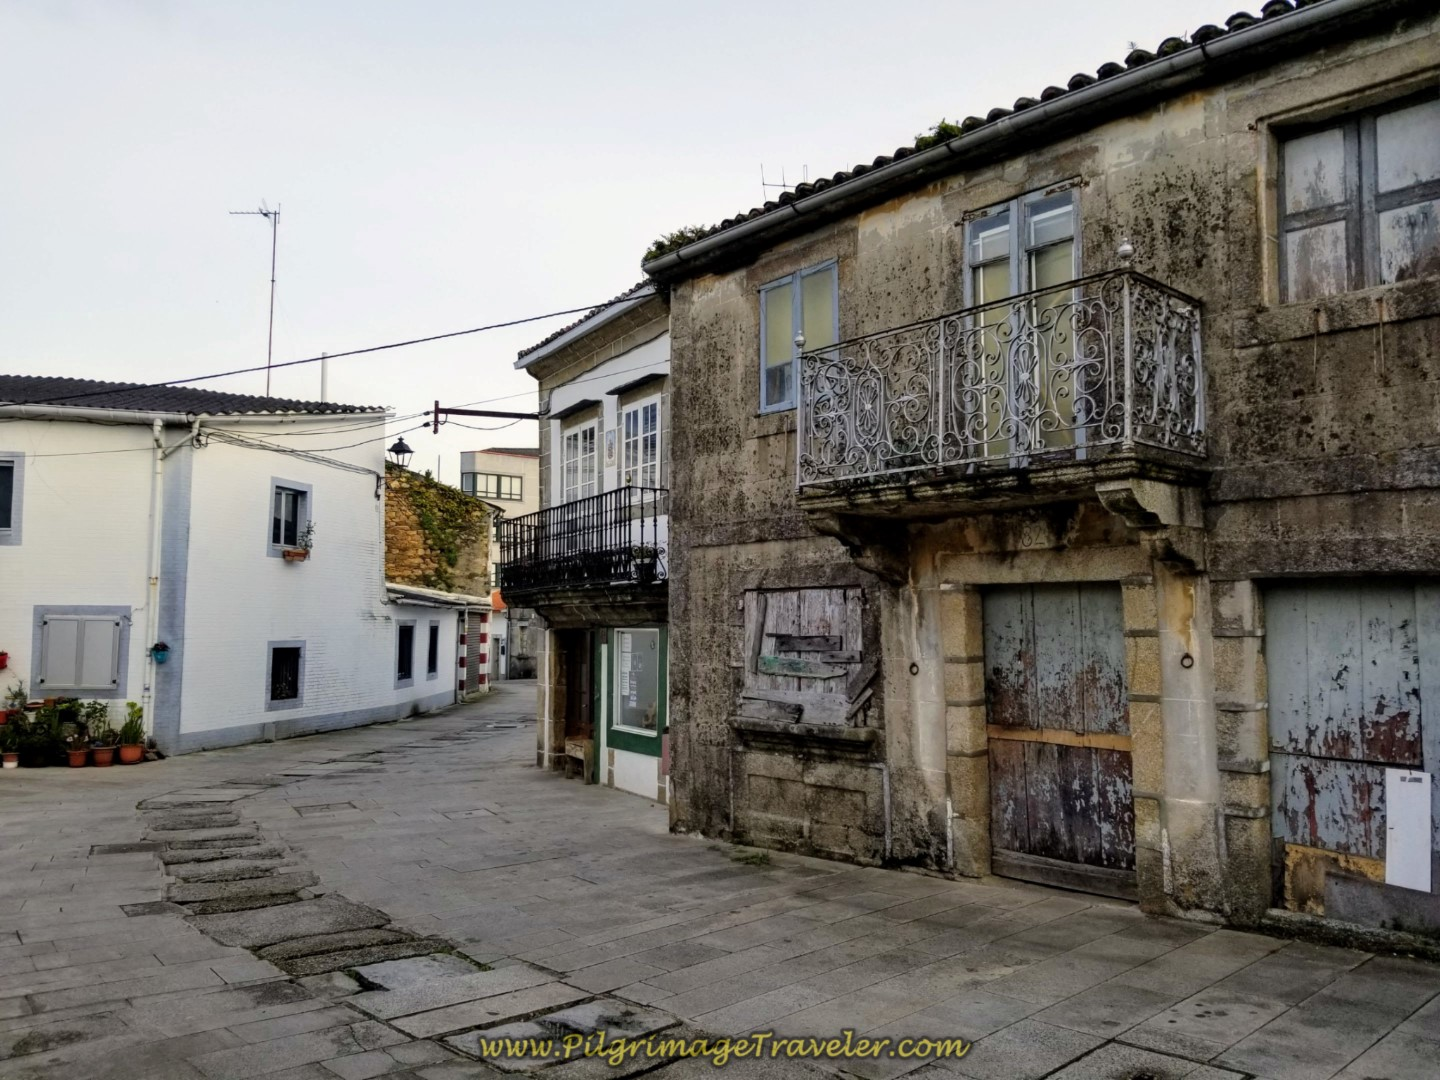 Very Old Building on the Rúa Real in Neda on day two of the Camino Inglés